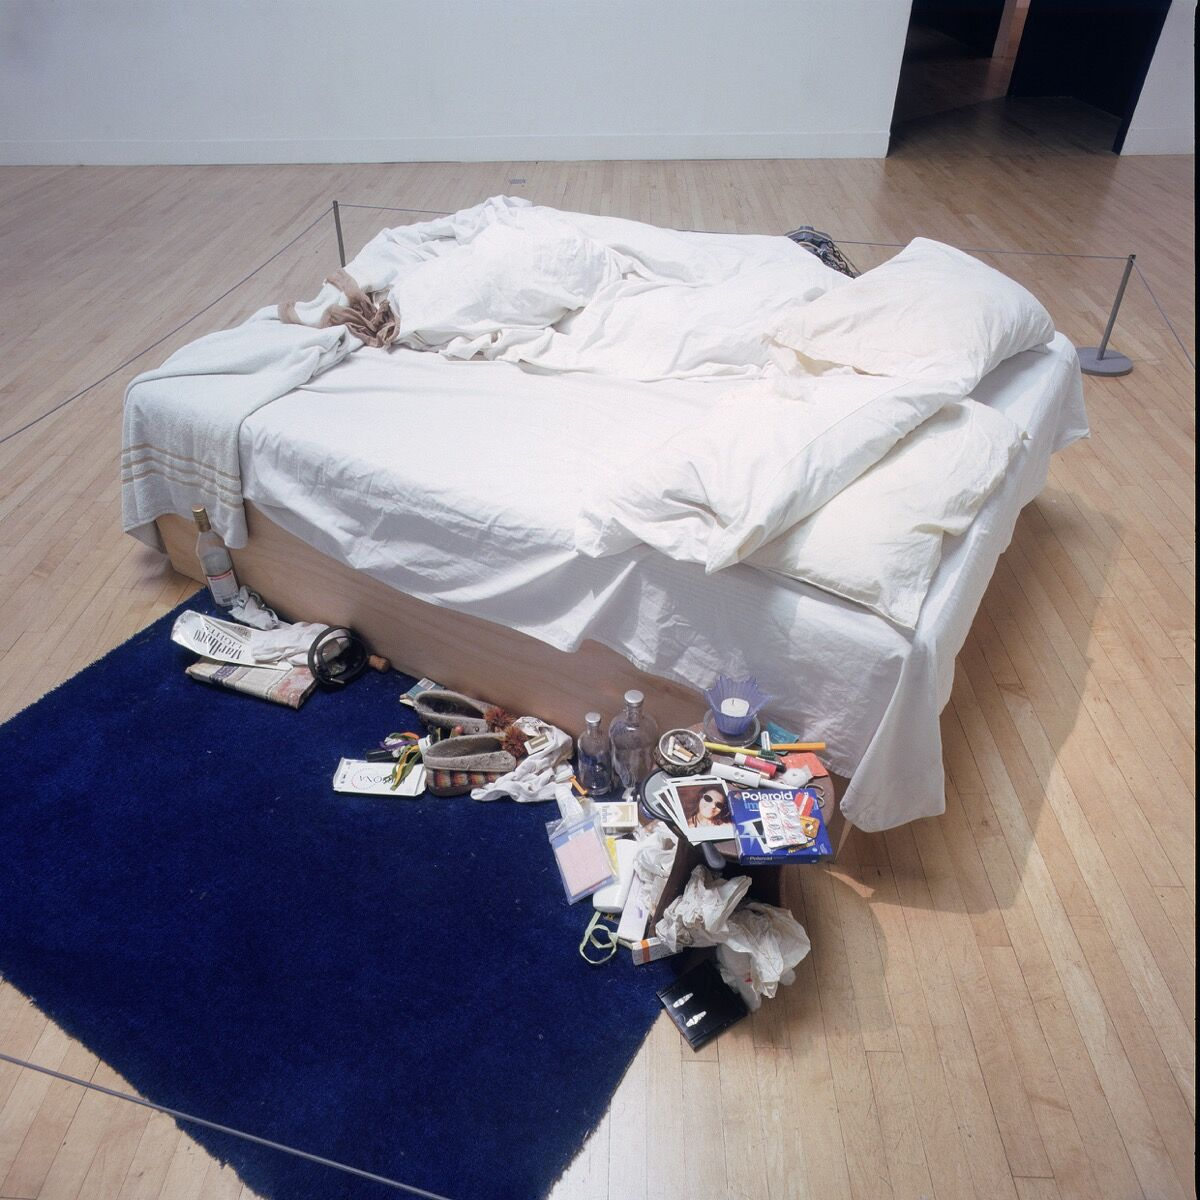 Installation view of Tracey Emin, My Bed, at the Turner Prize Exhibition, Tate Gallery, London, 1999-2000. Photo © Stephen White. © 2018 Tracey Emin. All rights reservied, DACS, London / Artists Rights Society (ARS), New York. Courtesy of White Cube.